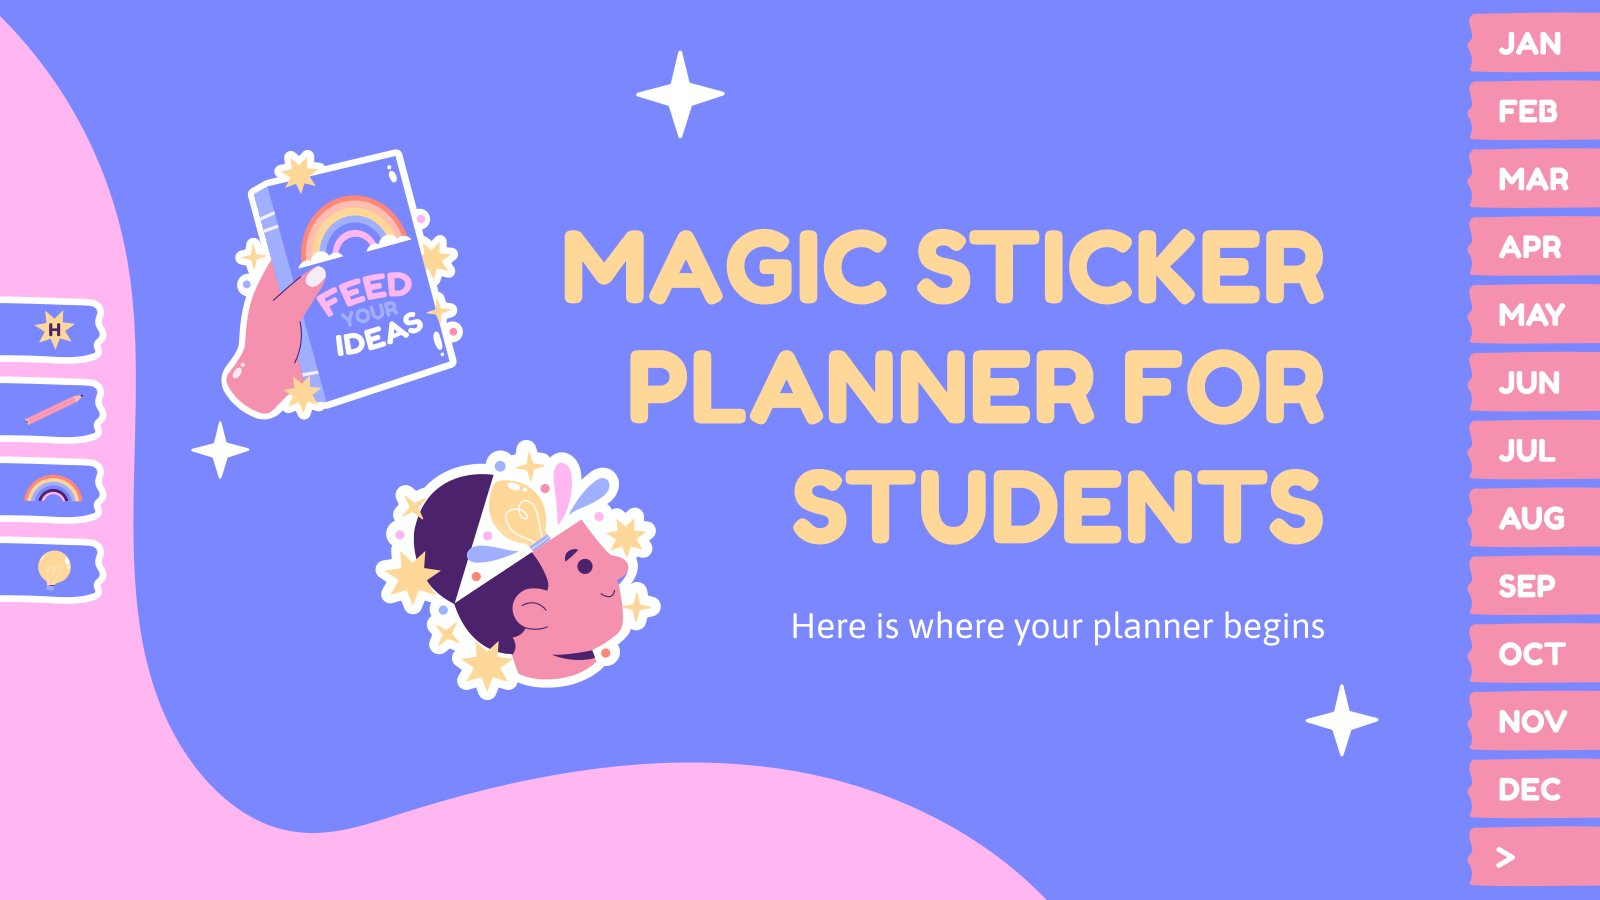 Magic Sticker Planner for Students presentation template